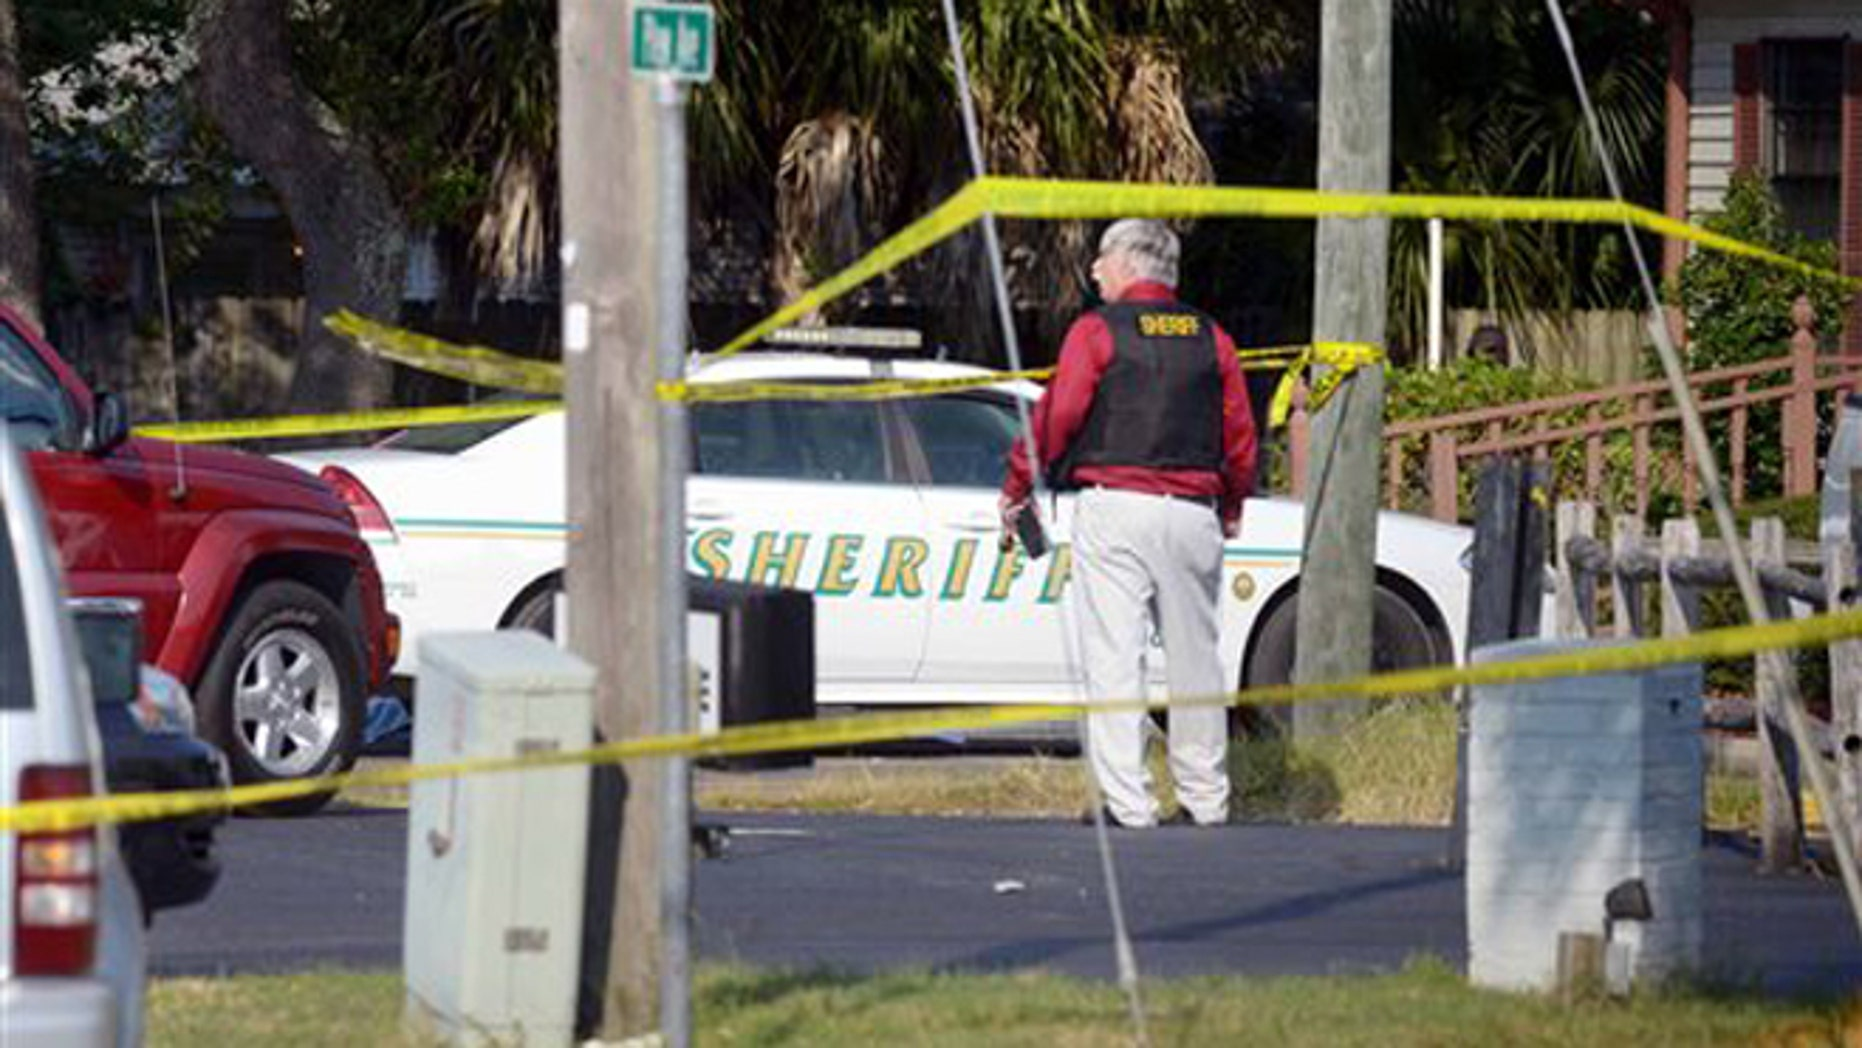 Sept. 22, 2015: Okaloosa Sheriff's Office personnel work at the scene of of a law office in Shalimar, Florida where a sheriff's deputy was shot by a man who later fled to the nearby town of Niceville and barricaded himself in a hotel before exchanging gunfire with deputies.